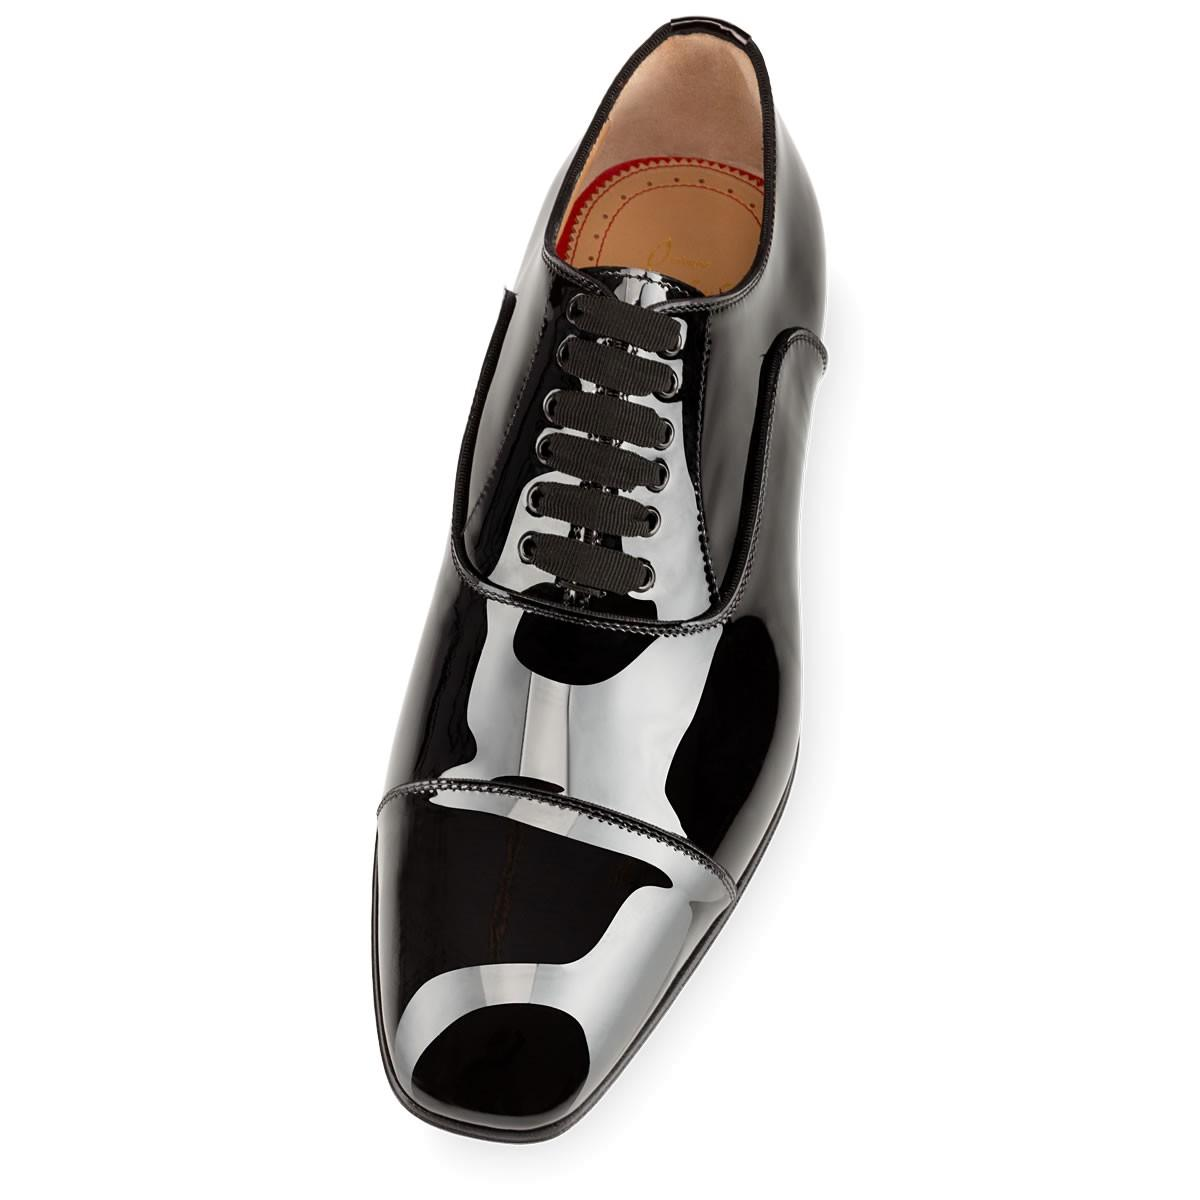 90b163e3eda Christian Louboutin Greggo Patent-Leather Derby Shoes In Black ...